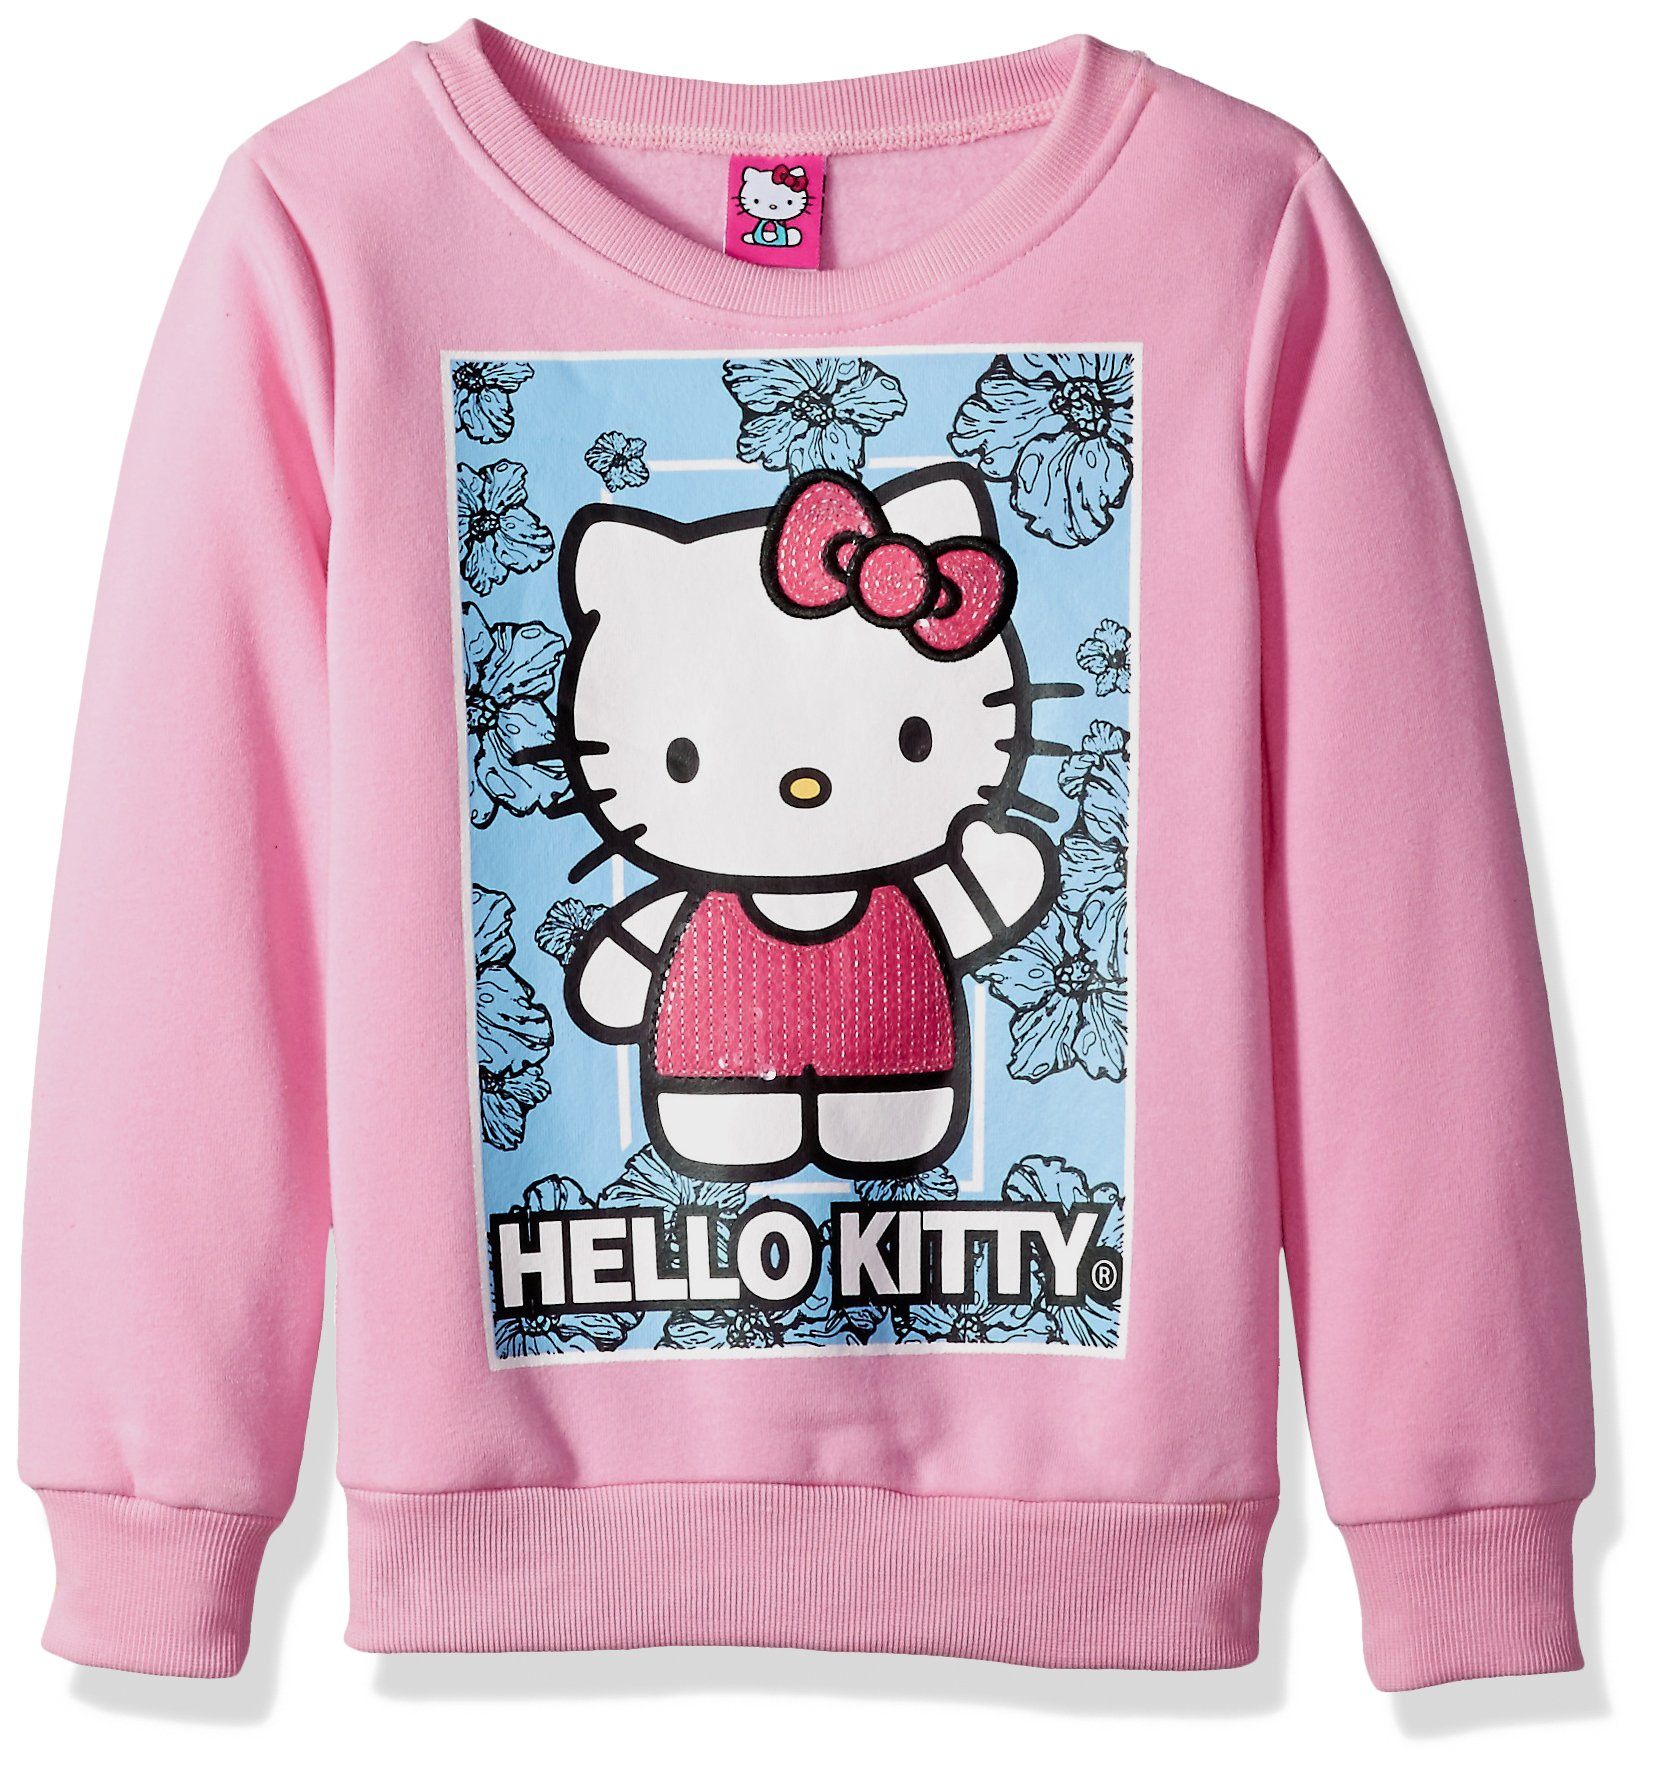 Hello Kitty Big Girls' Sweatshirt with Sequins and Lace Details, Pink, 8